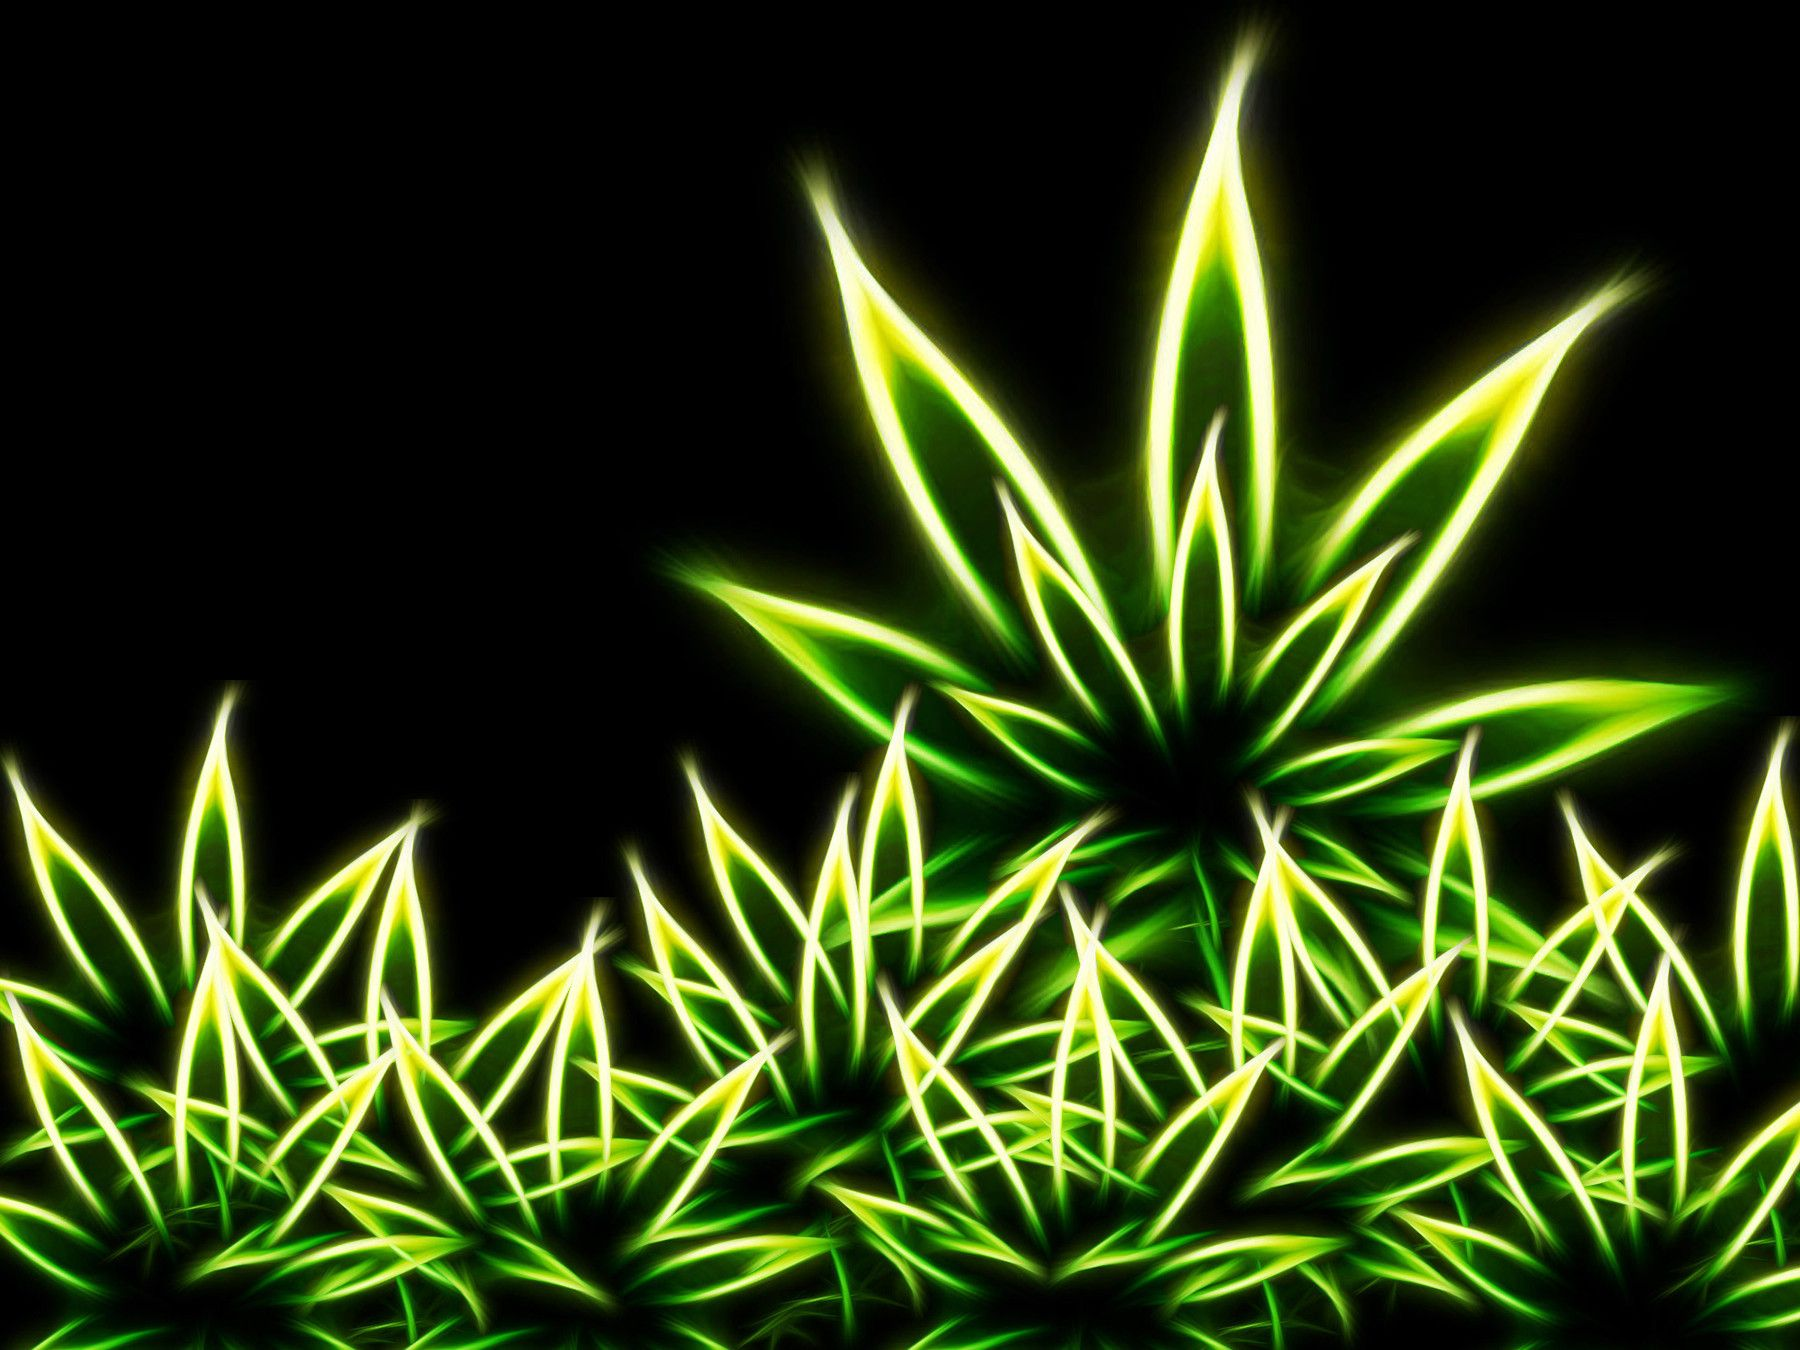 Weed Wallpapers HD Free download | Wallpapers, Backgrounds, Images ... | wallpapers I like ...